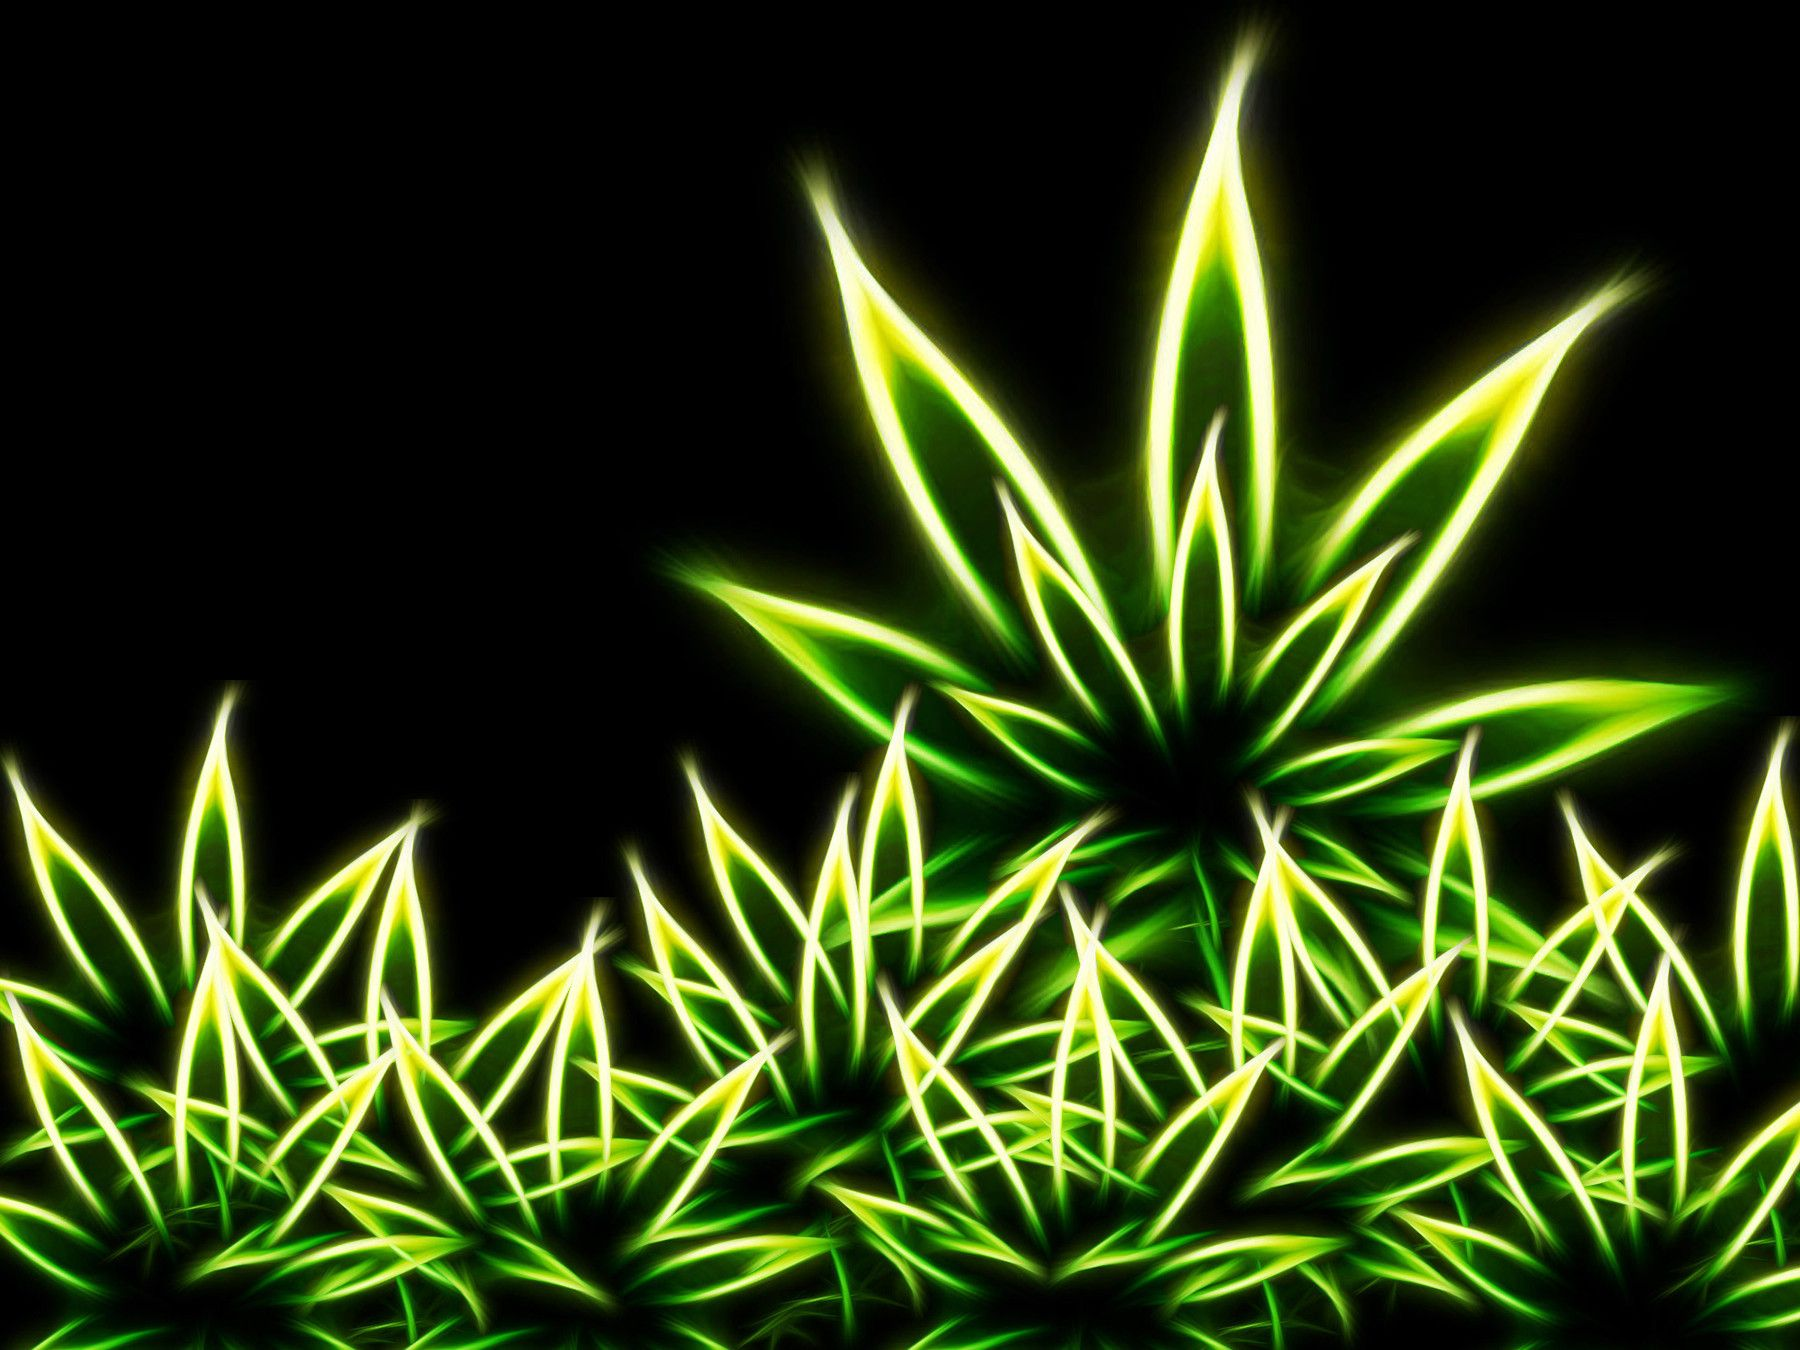 Weed Wallpapers HD Free download | Wallpapers, Backgrounds, Images ... | wallpapers I like ...